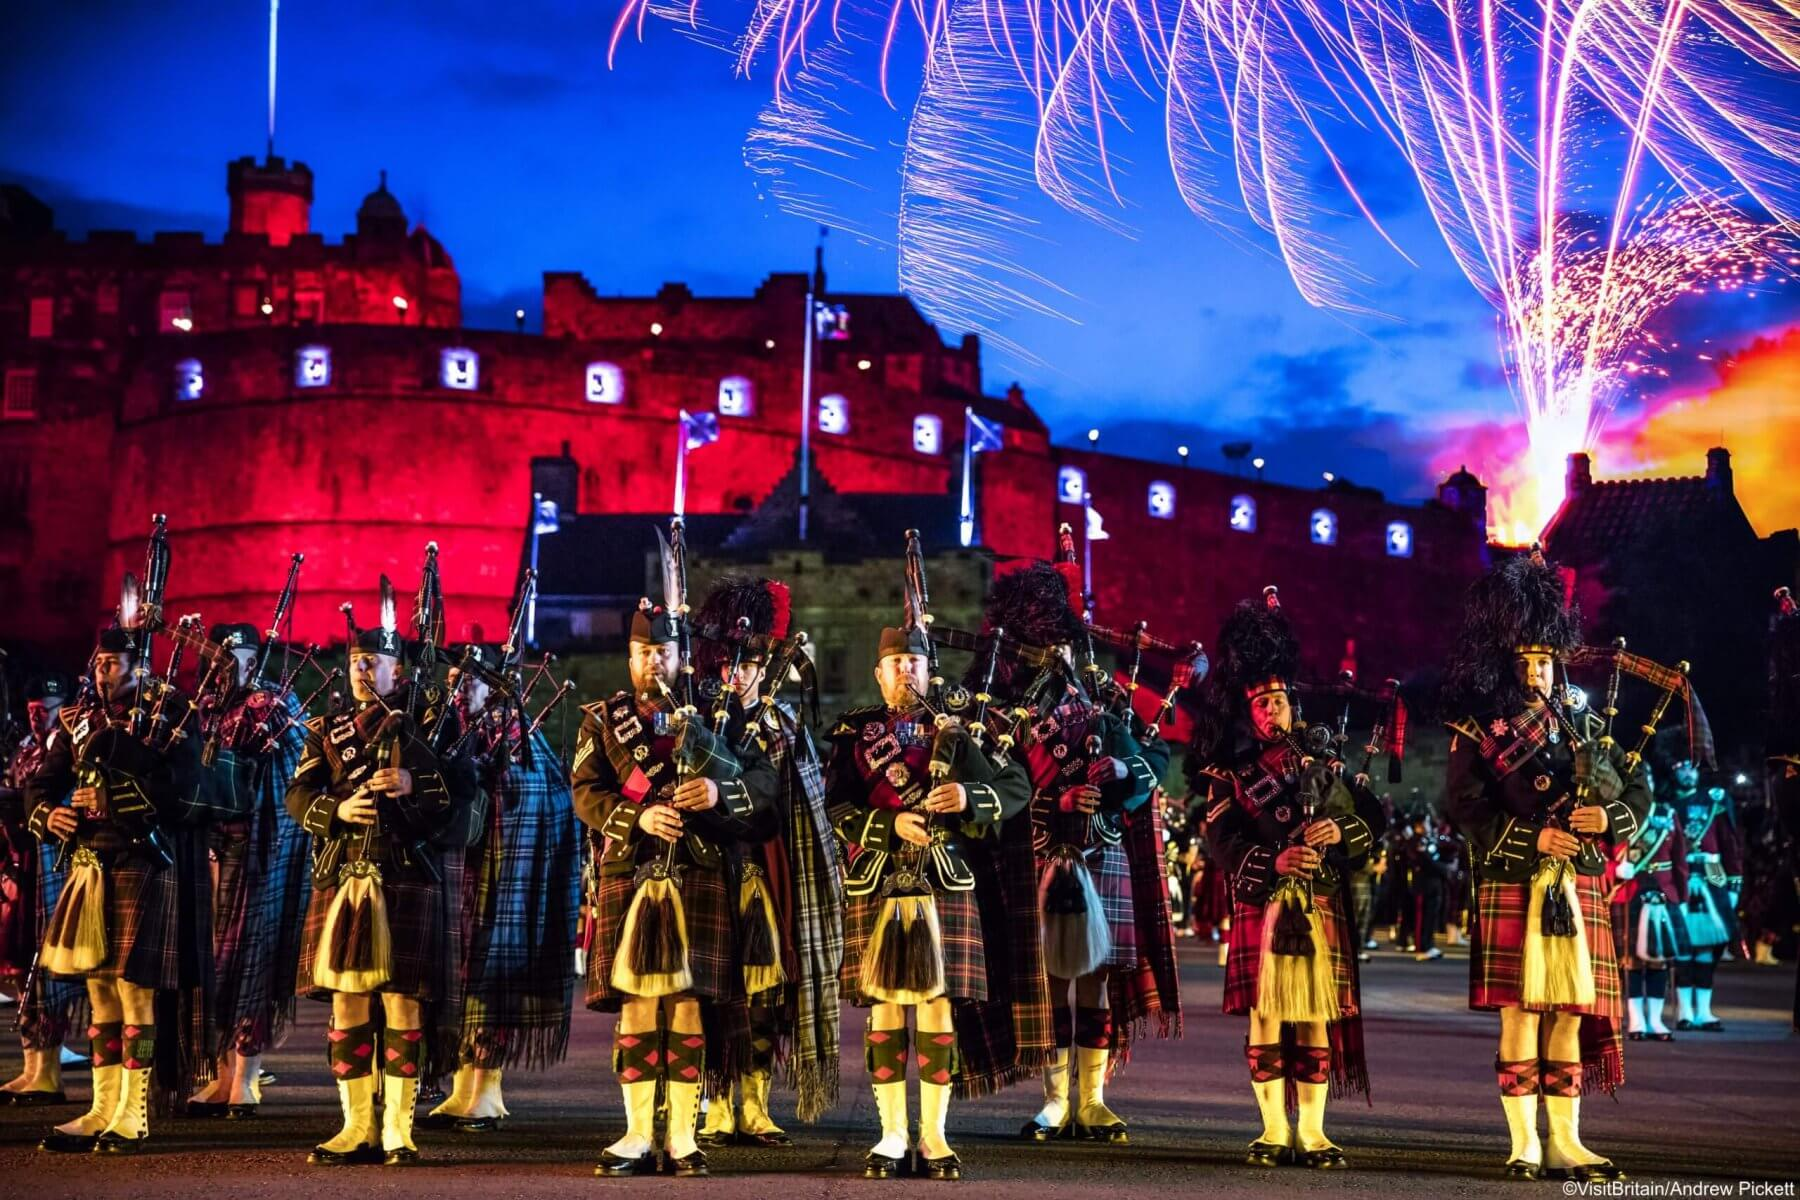 Performance at Edinburgh Military Tattoo